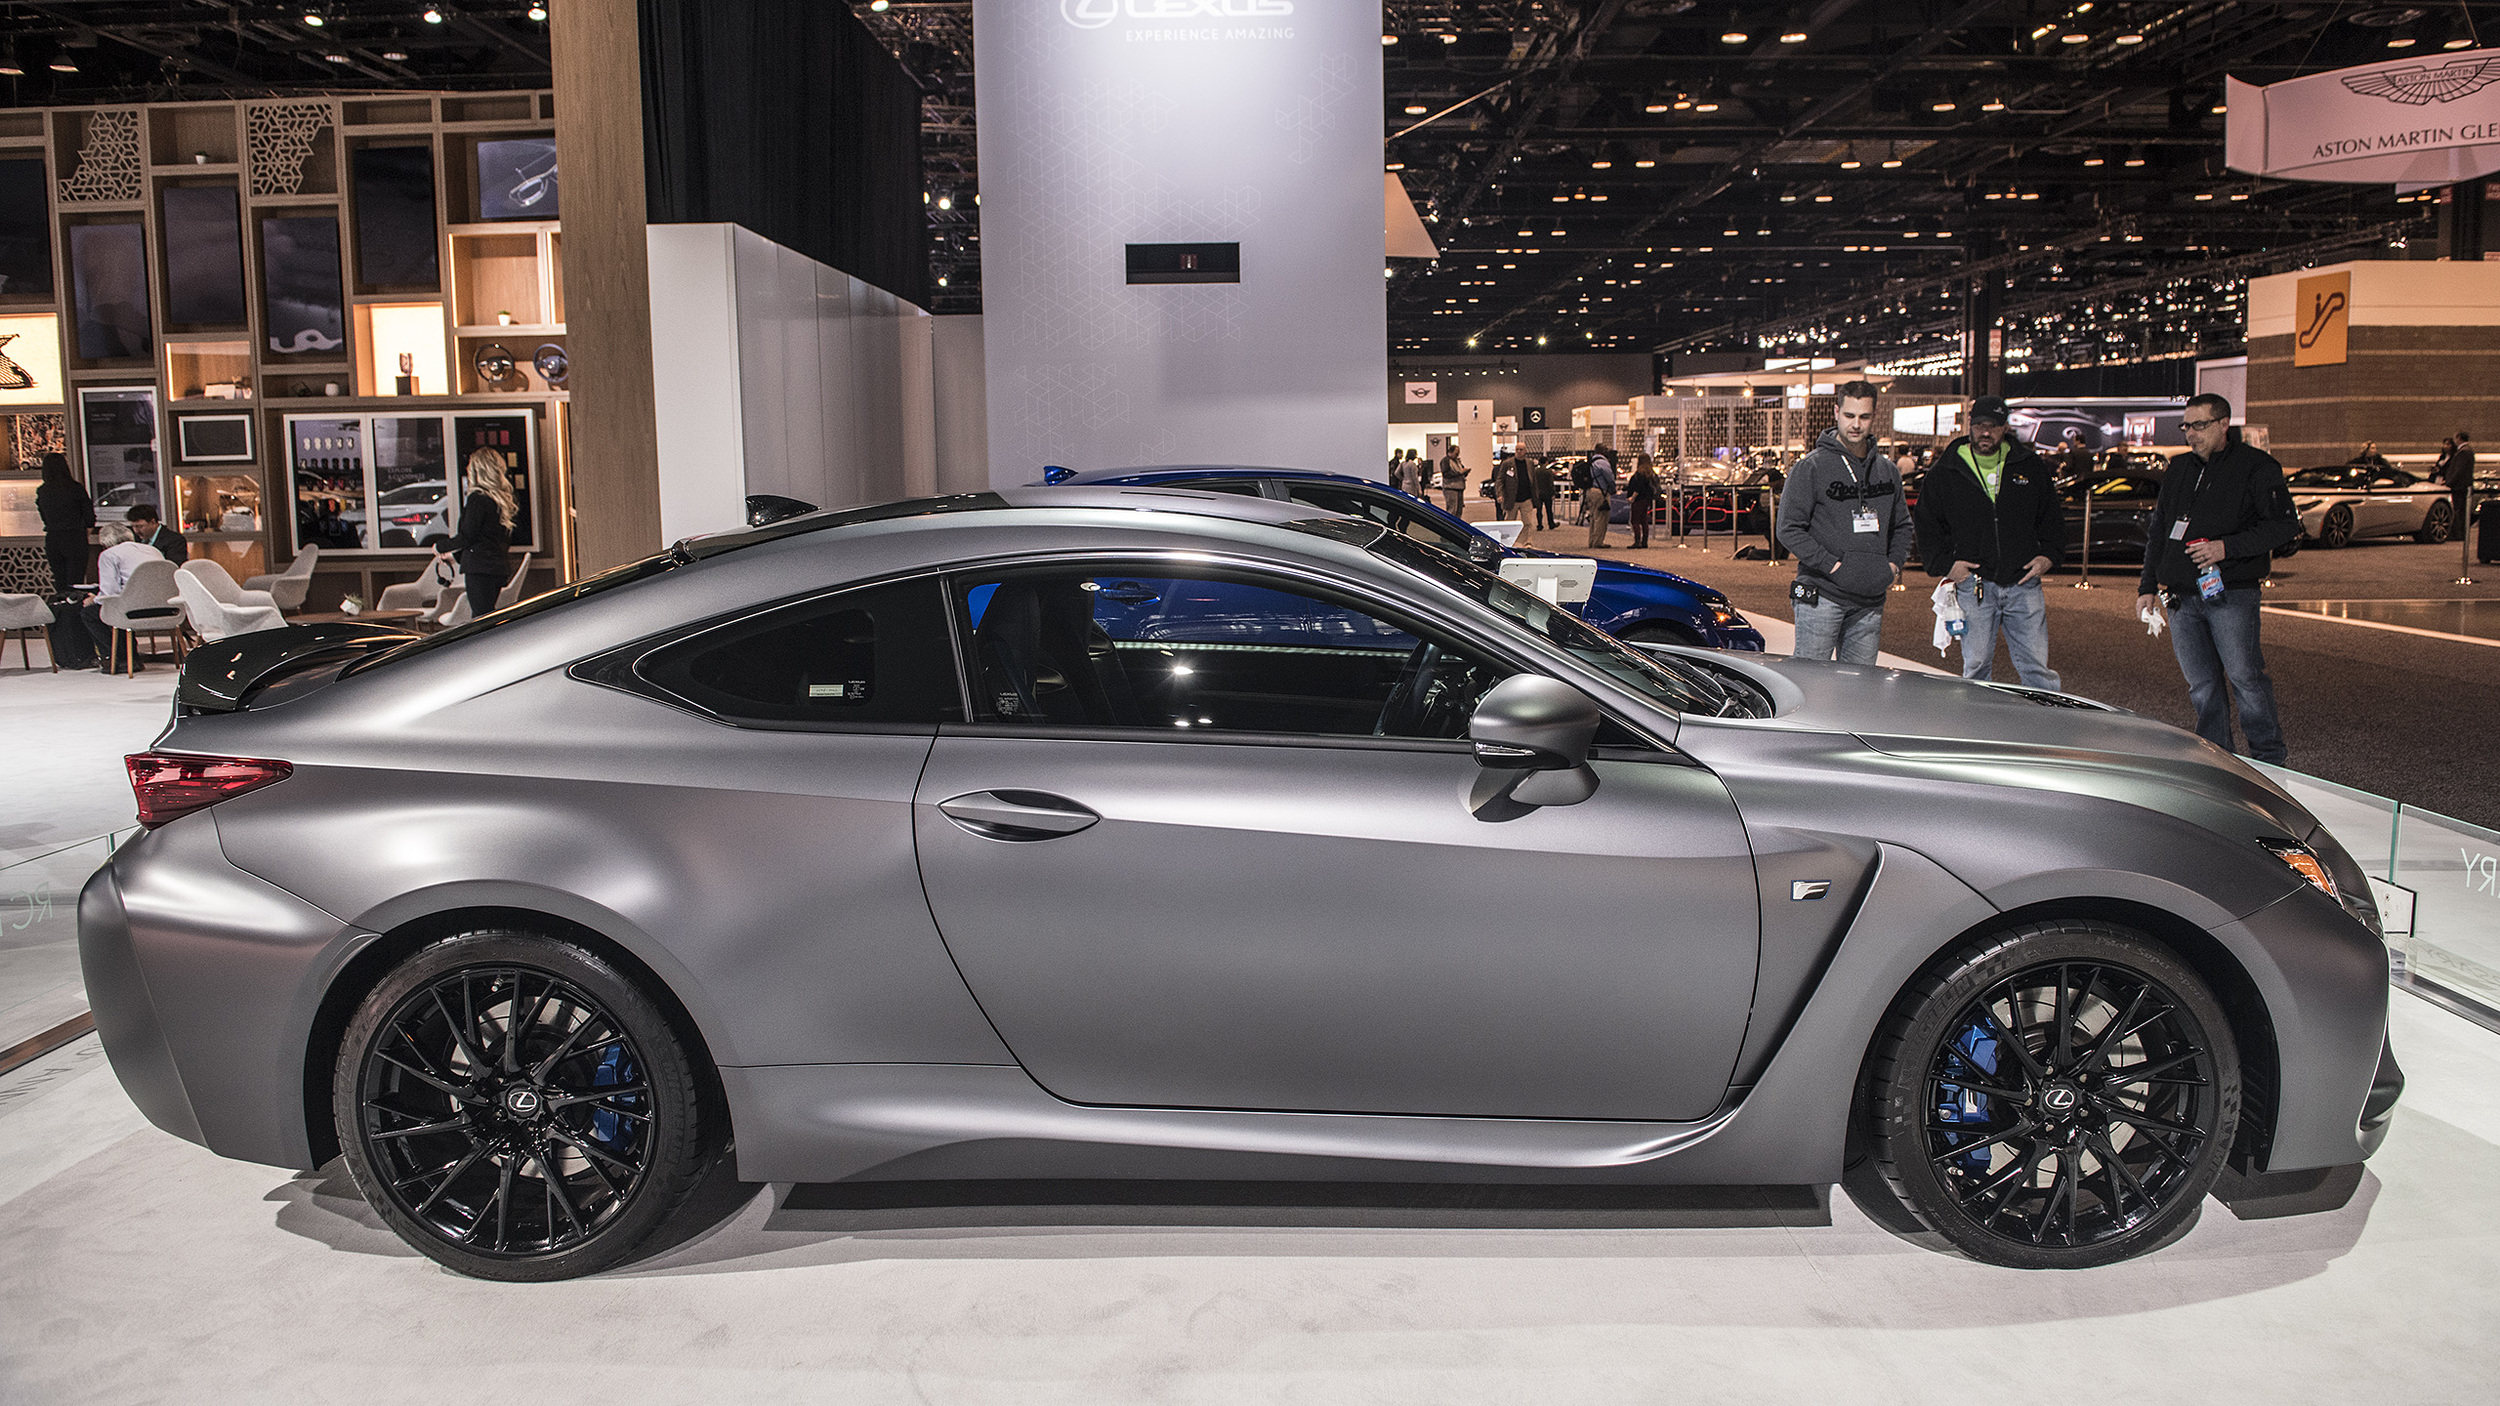 2019 Lexus Rc F 10th Anniversary Special Edition Chicago 2018 Photo Gallery Autoblog